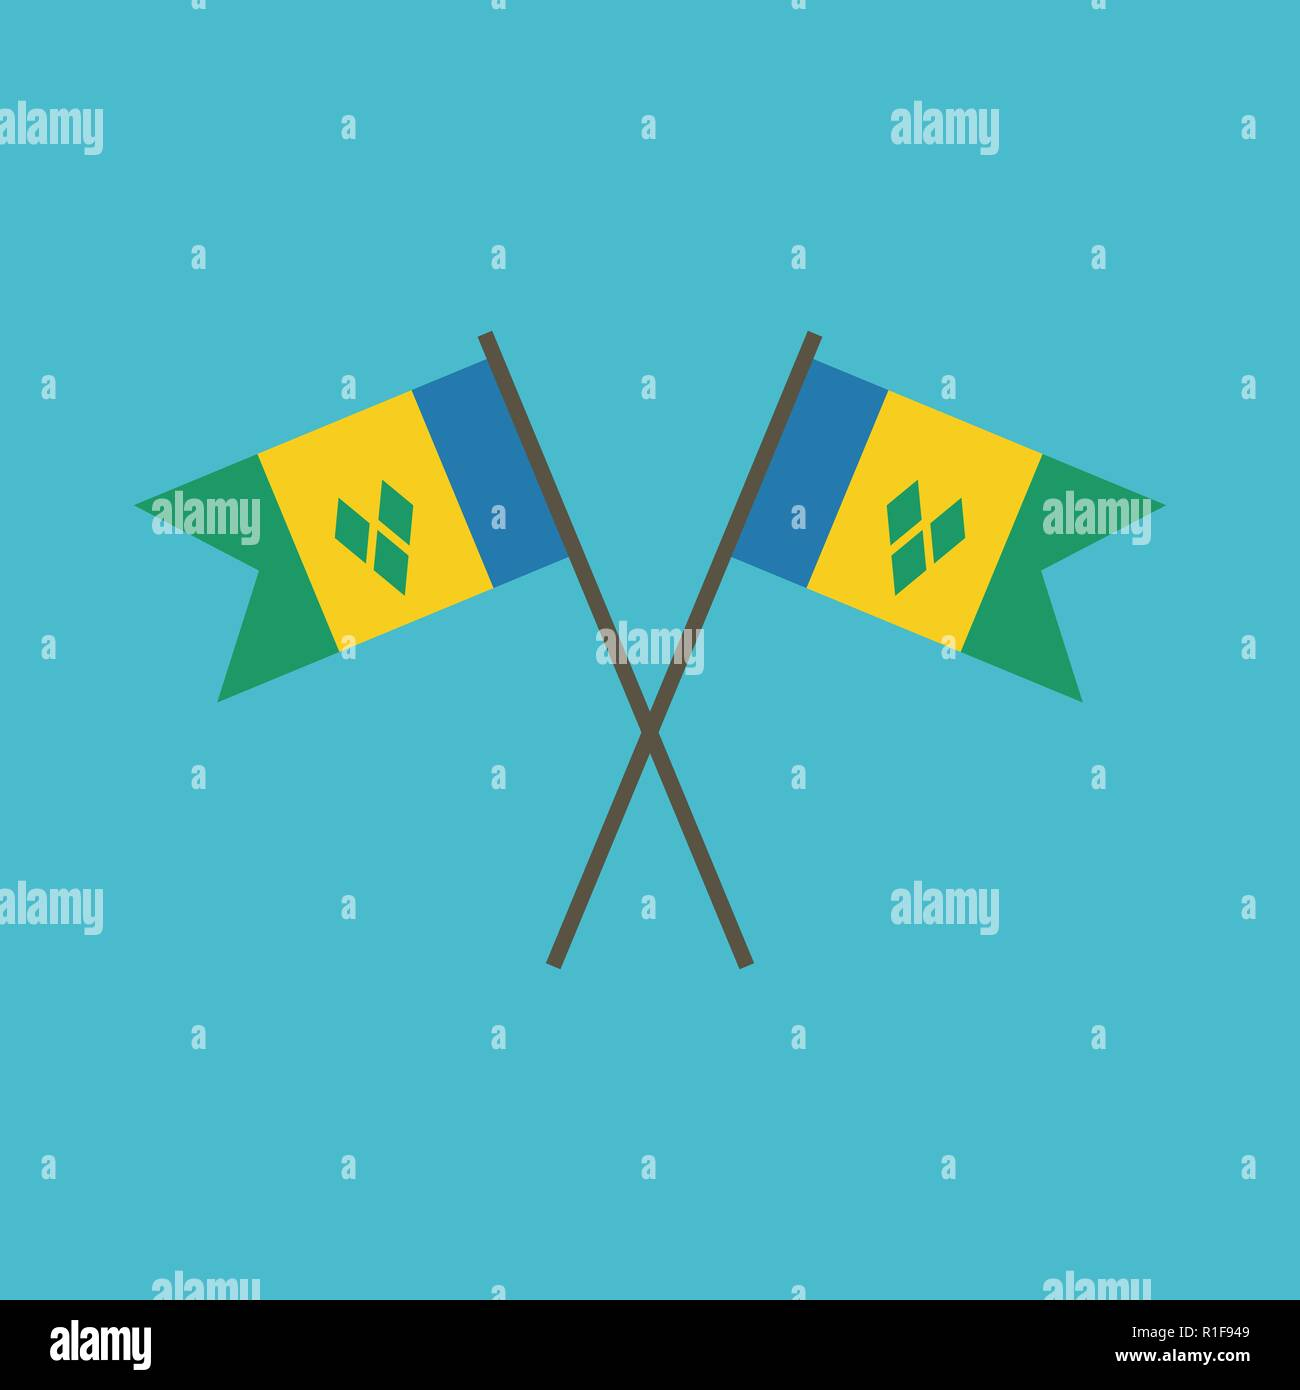 Saint Vincent and the Grenadines flag icon in flat design